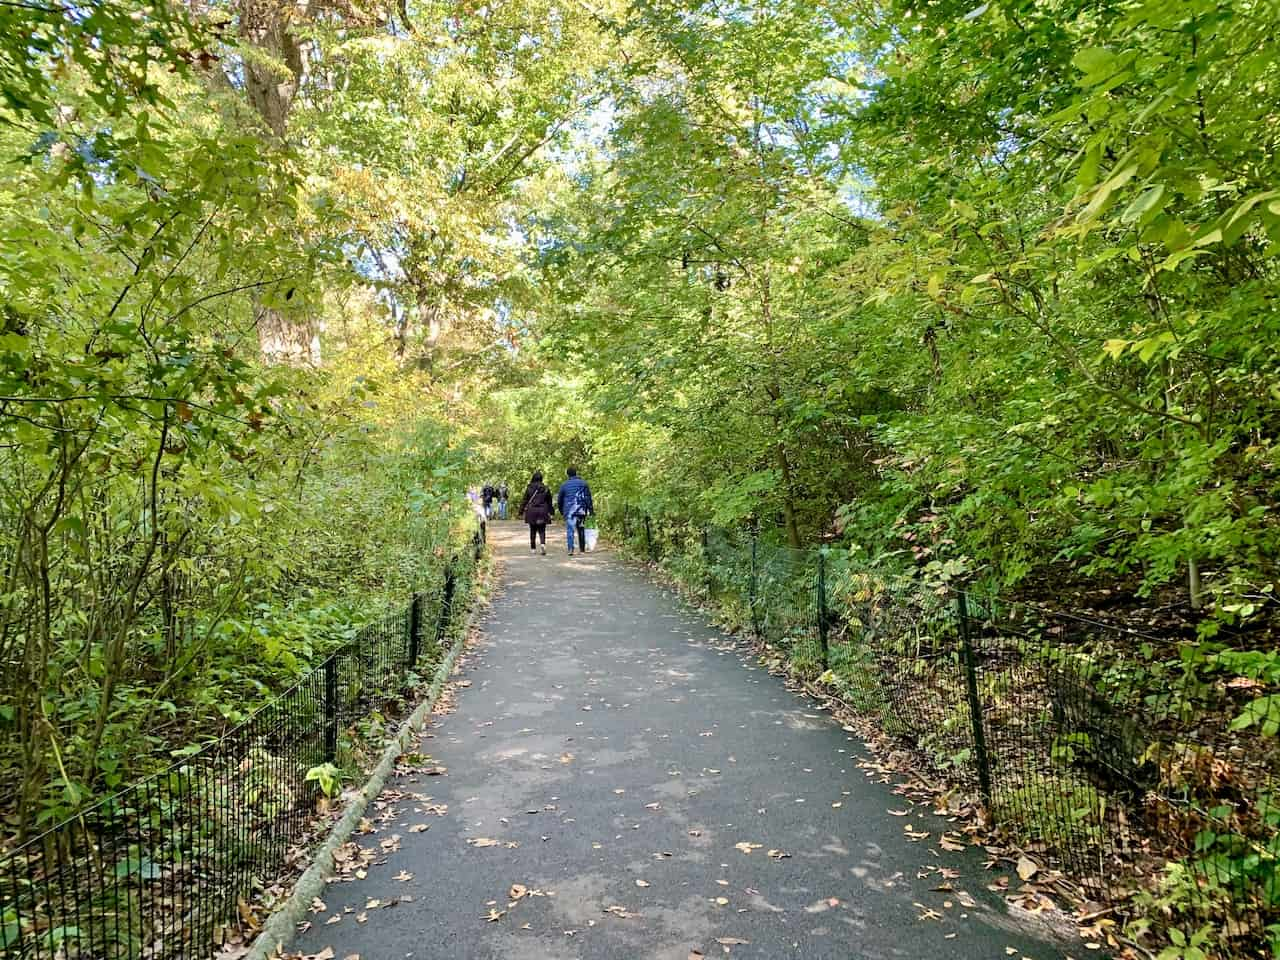 Hiking in Central Park